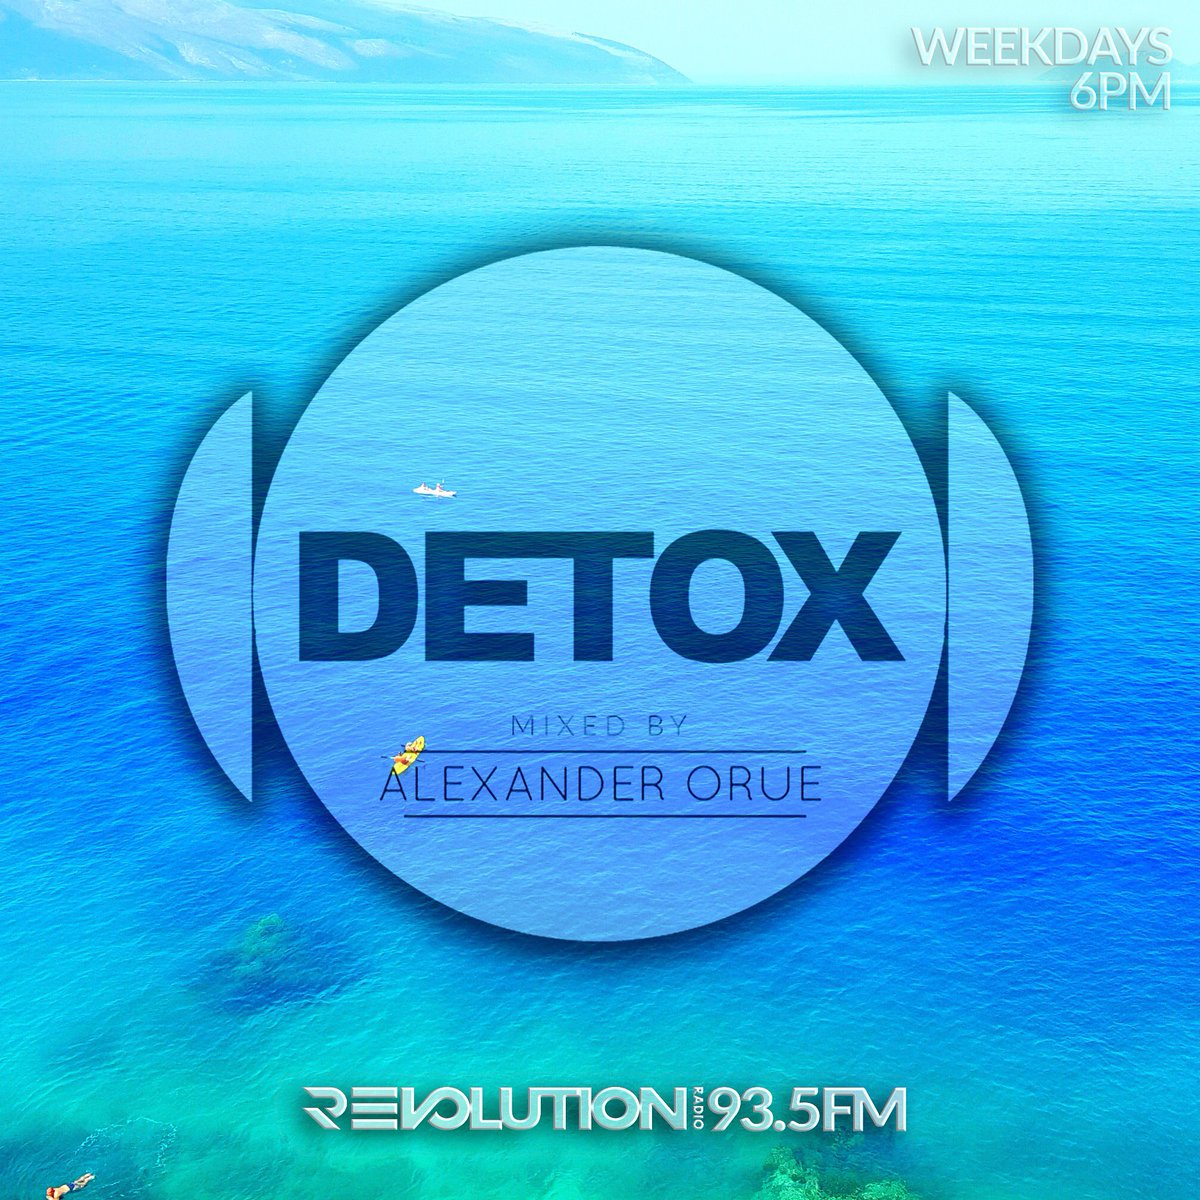 This is #DETOX with @alexanderorue  #deephouse #nudisco <br>http://pic.twitter.com/J1MgAwZWIT